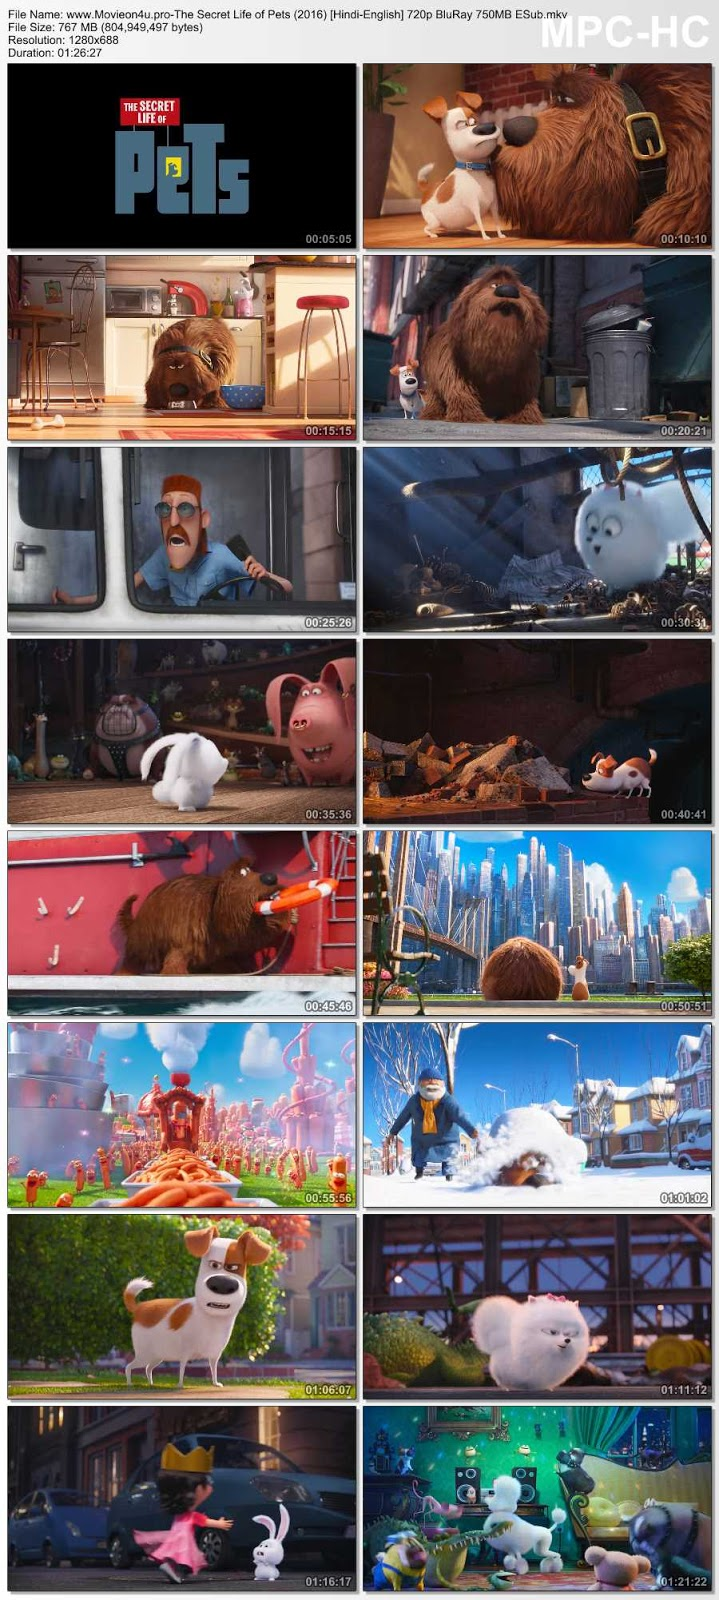 >The Secret Life of Pets (2016) 480p Dual Audio In [Hindi English]